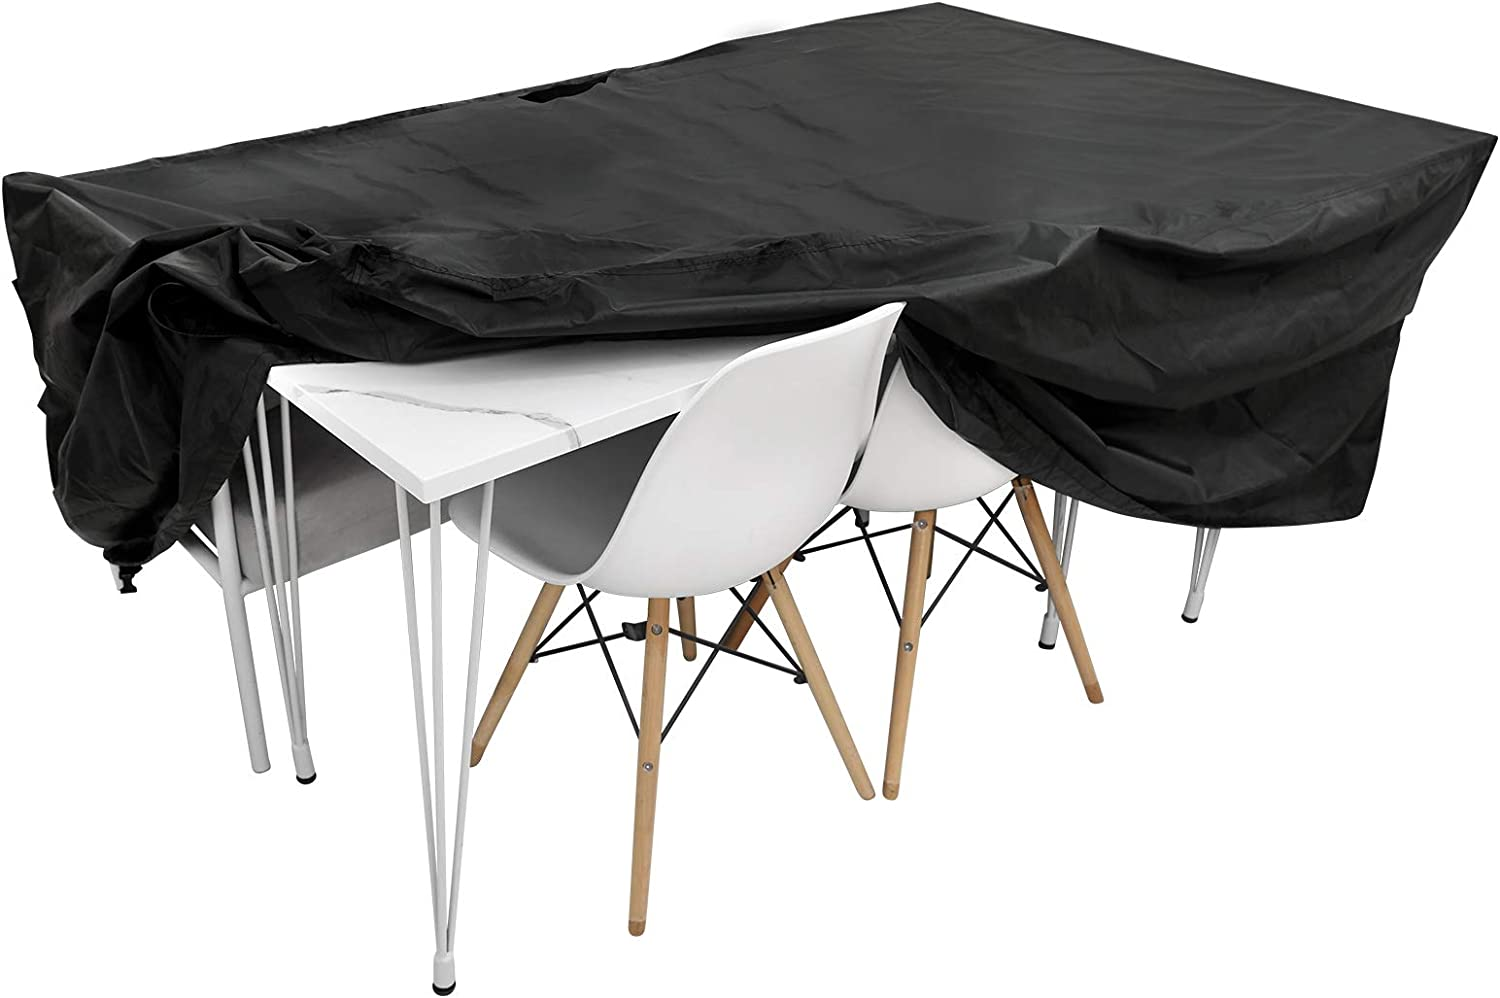 Comfook Patio Rectangular Furniture Set Cover Outdoor Table and Chair Furniture Set Covers 420D Oxford PU Coated Water UV Resistant Rain Snow Dust Wind-Proof Fits for 4-6 Seats(74.8